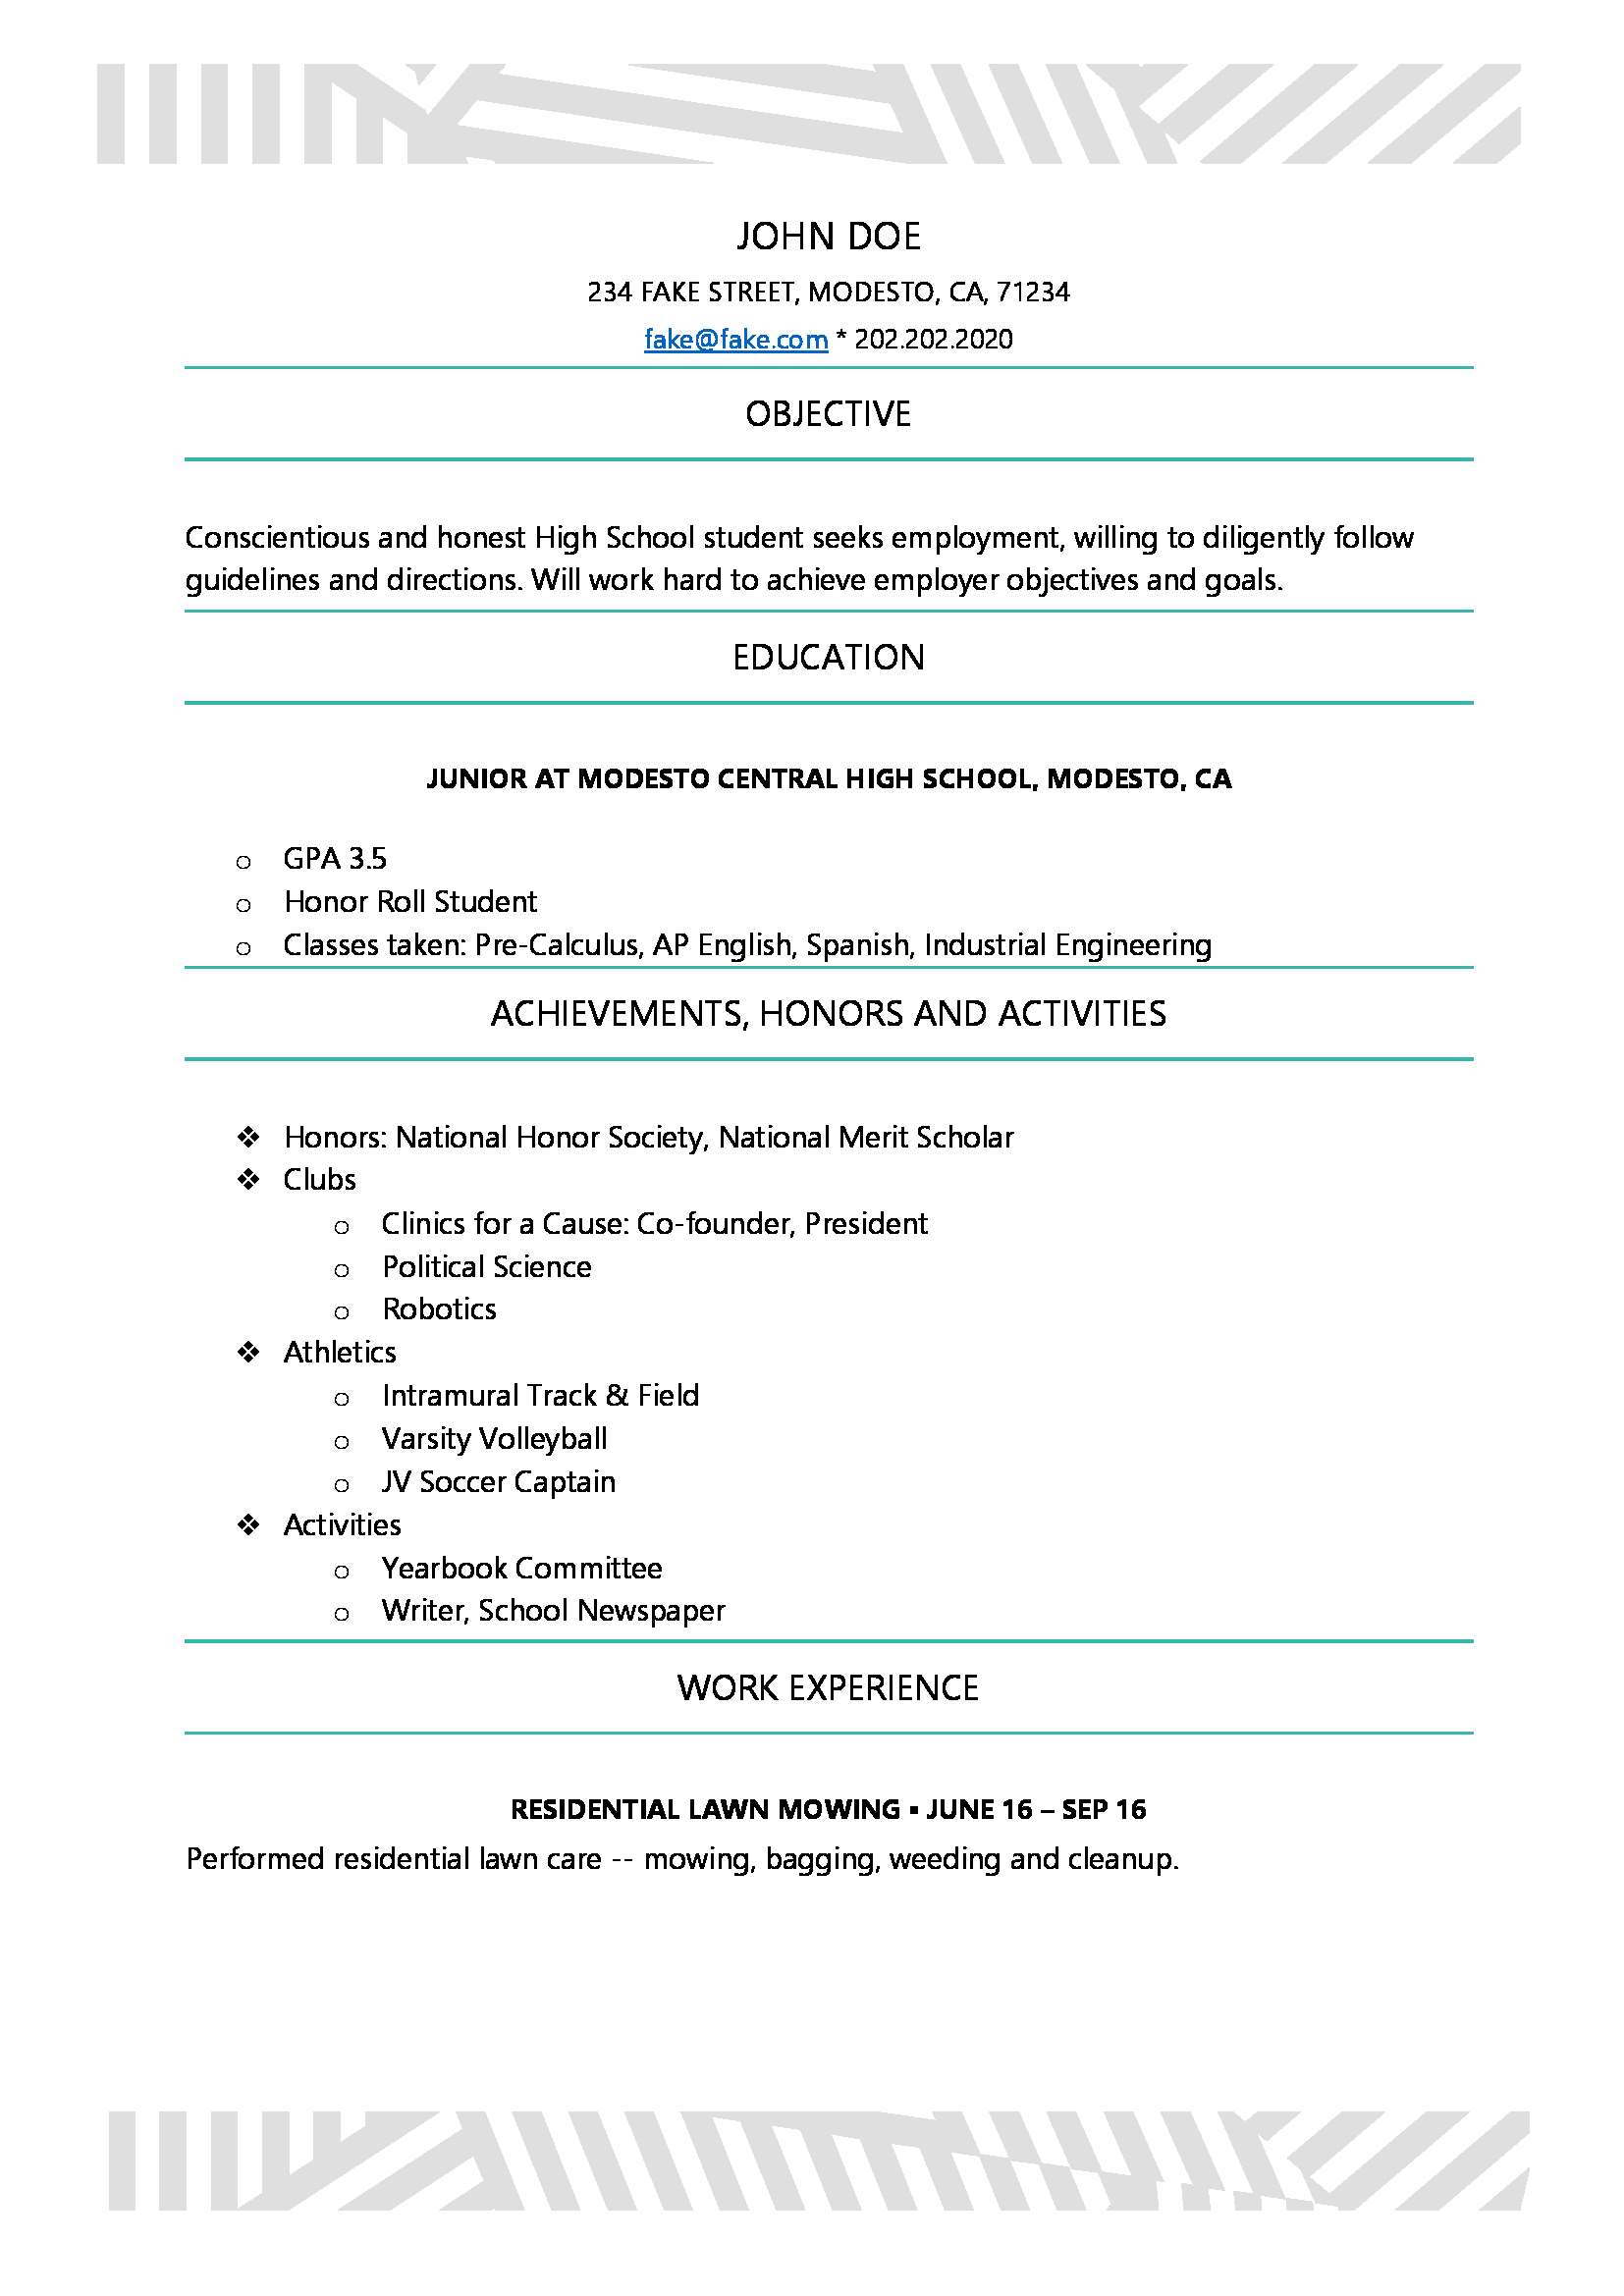 High School Resume - High School Resume Templates